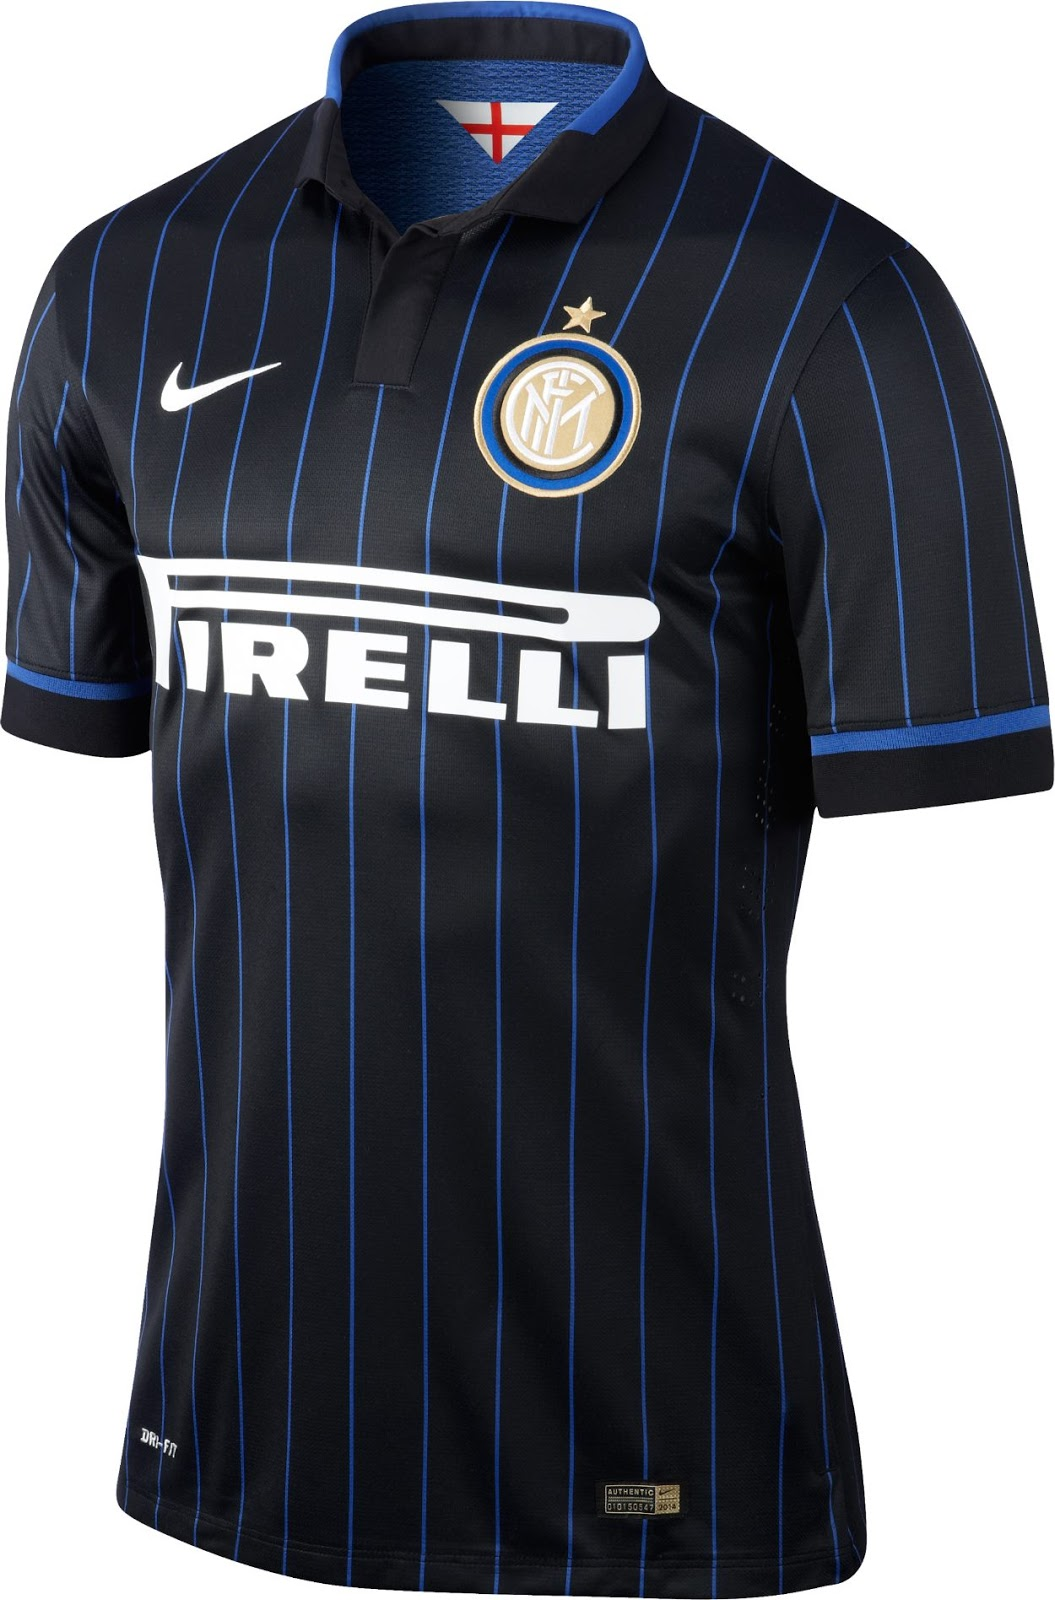 Nike-Inter-14-15-Home-Kit (1)